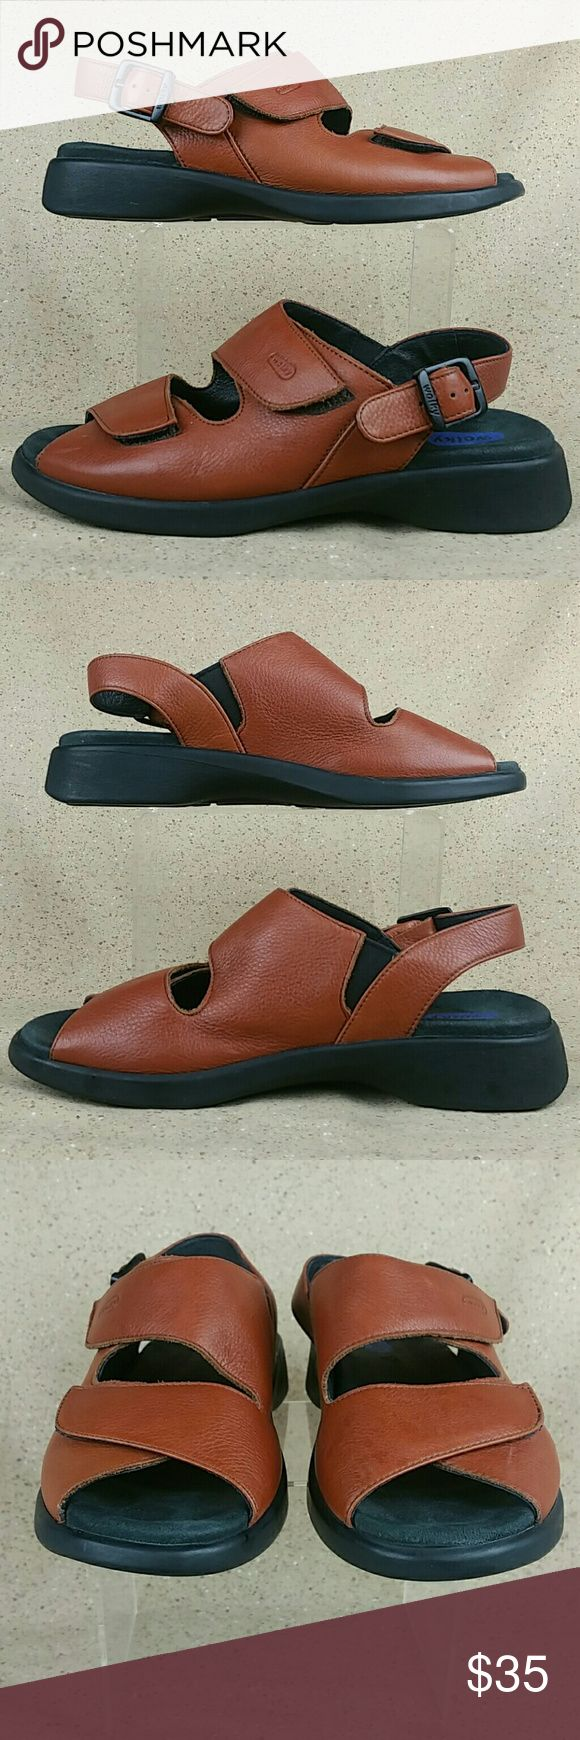 Wolky 617 Nines Slingback Sandals W 7 EU 38 These sandals are pre-owned in excellent condition. Gentle wear on the outside from use. Little to no wear to the bottoms. Look over the pictures carefully before purchasing . Wolky Shoes Sandals